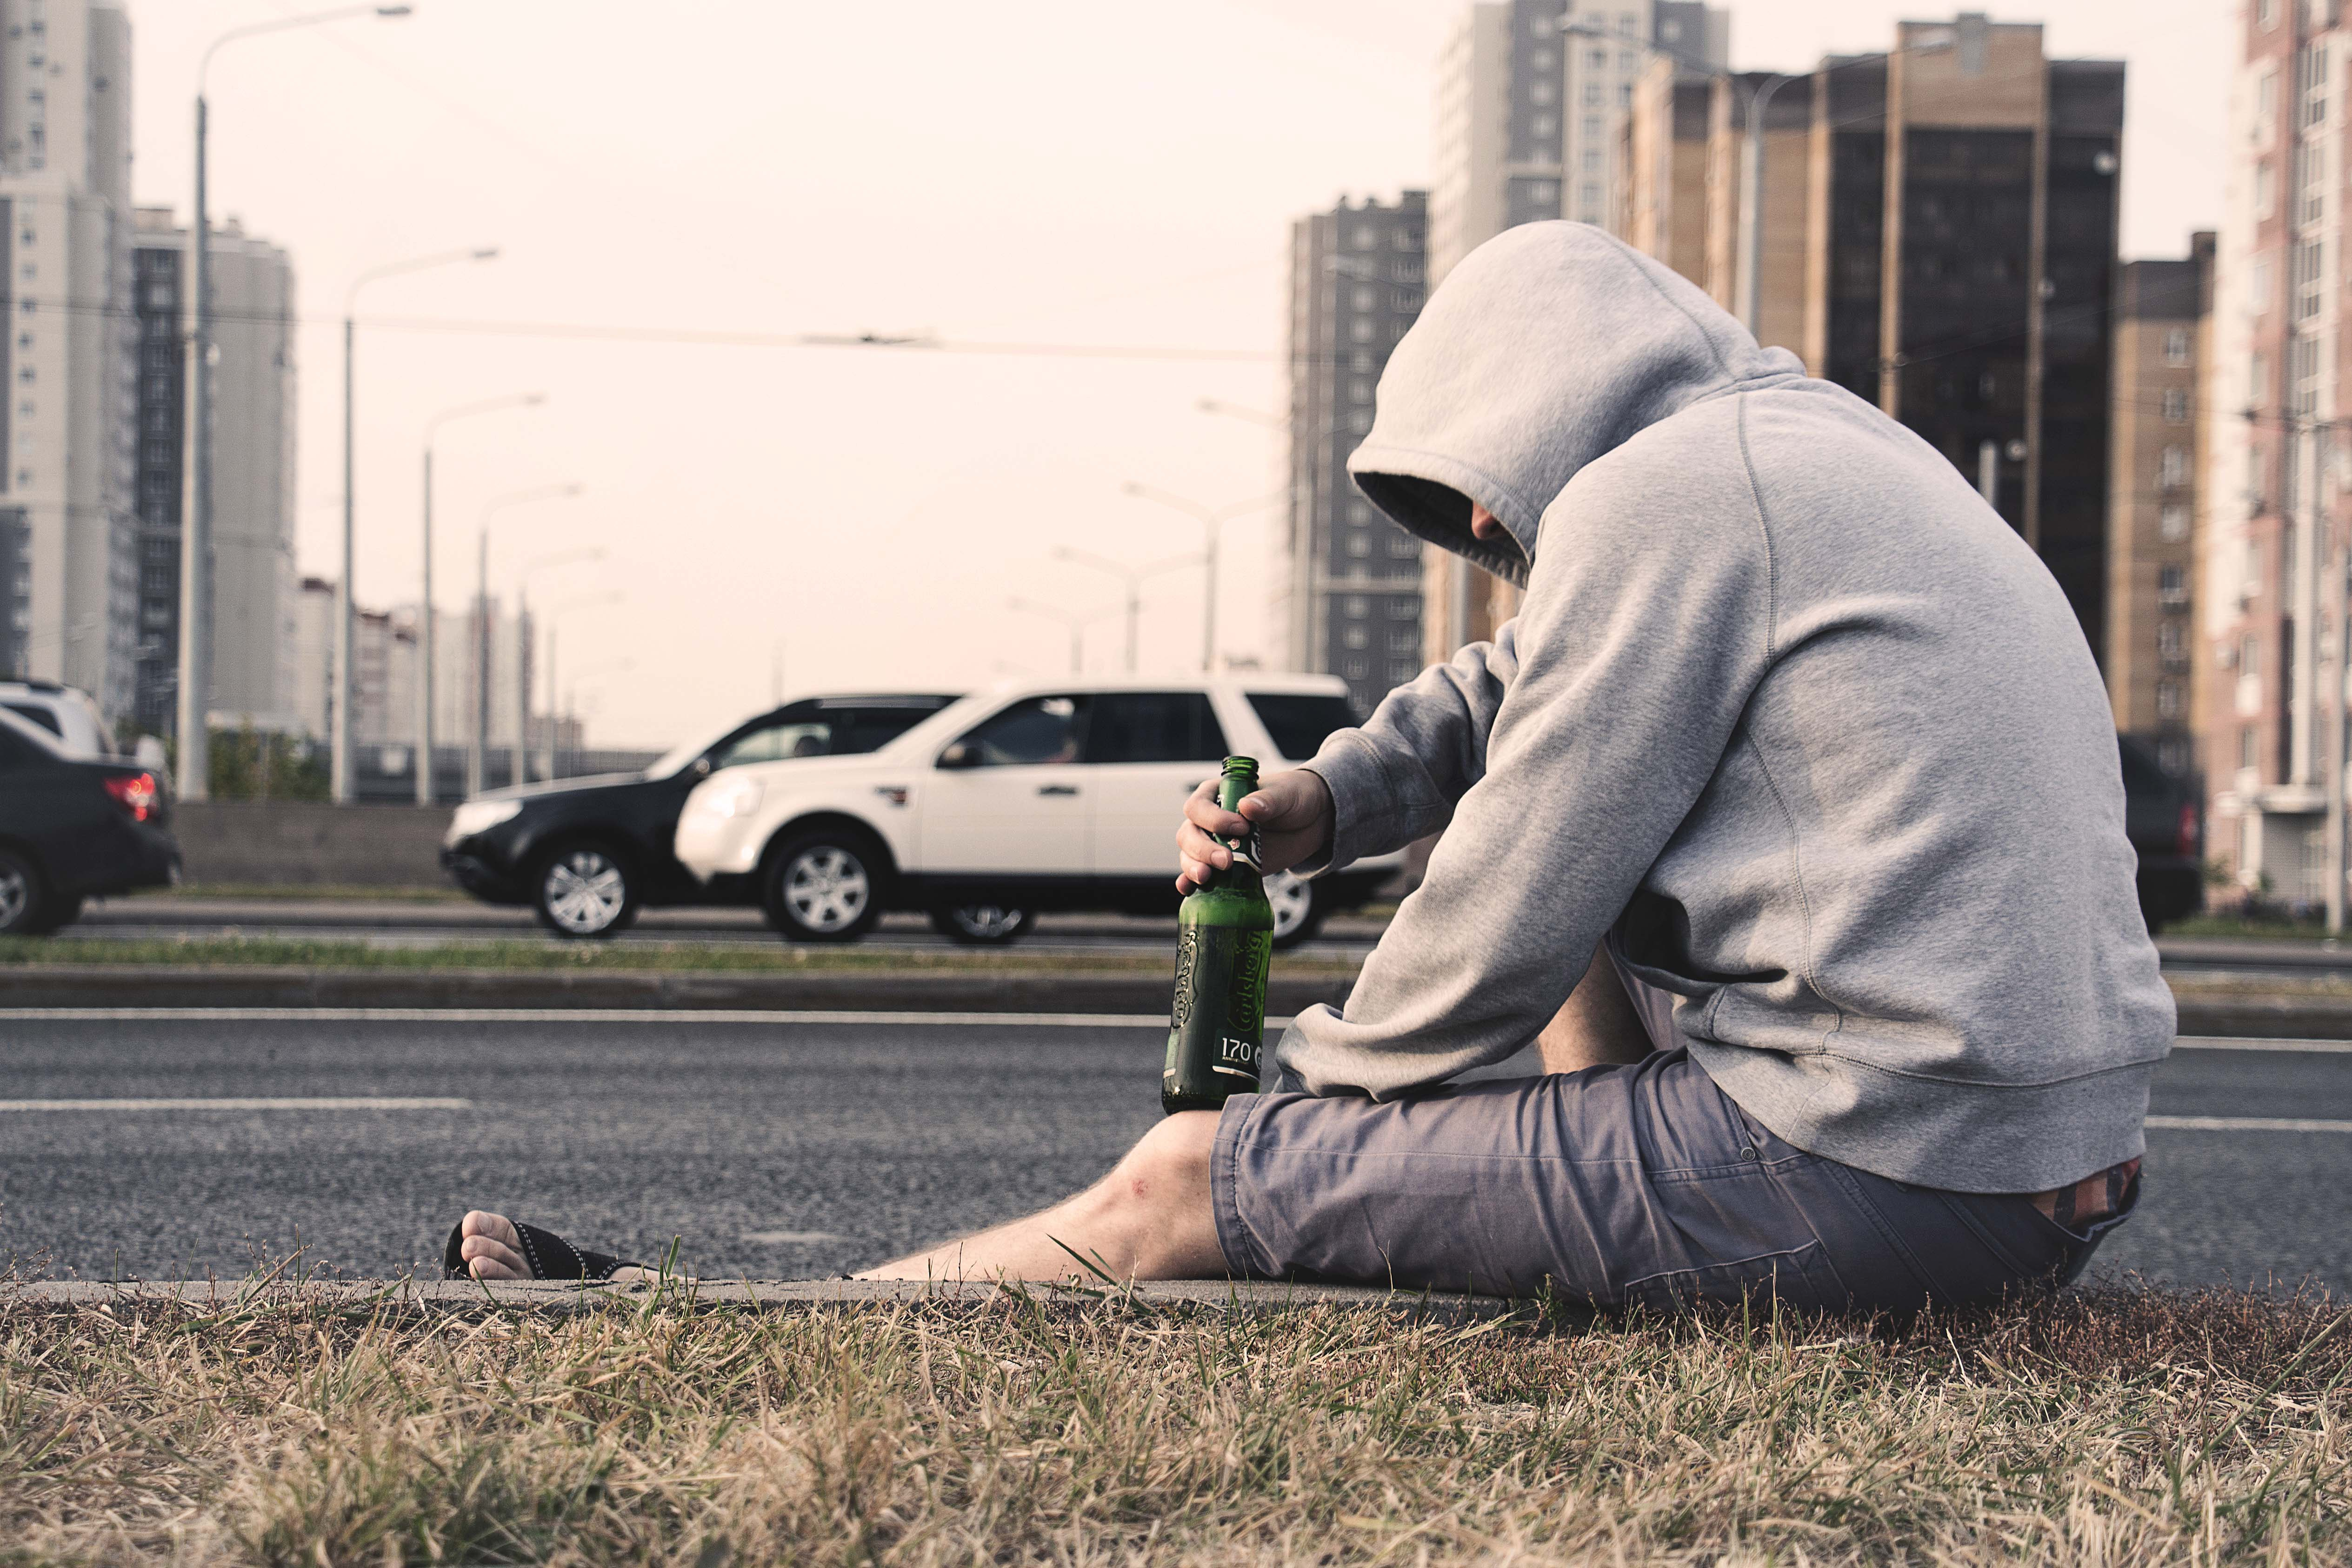 Drug and Alcohol Dependence and Addiction Rehabilitation Treatment to Help You Regain Your Life